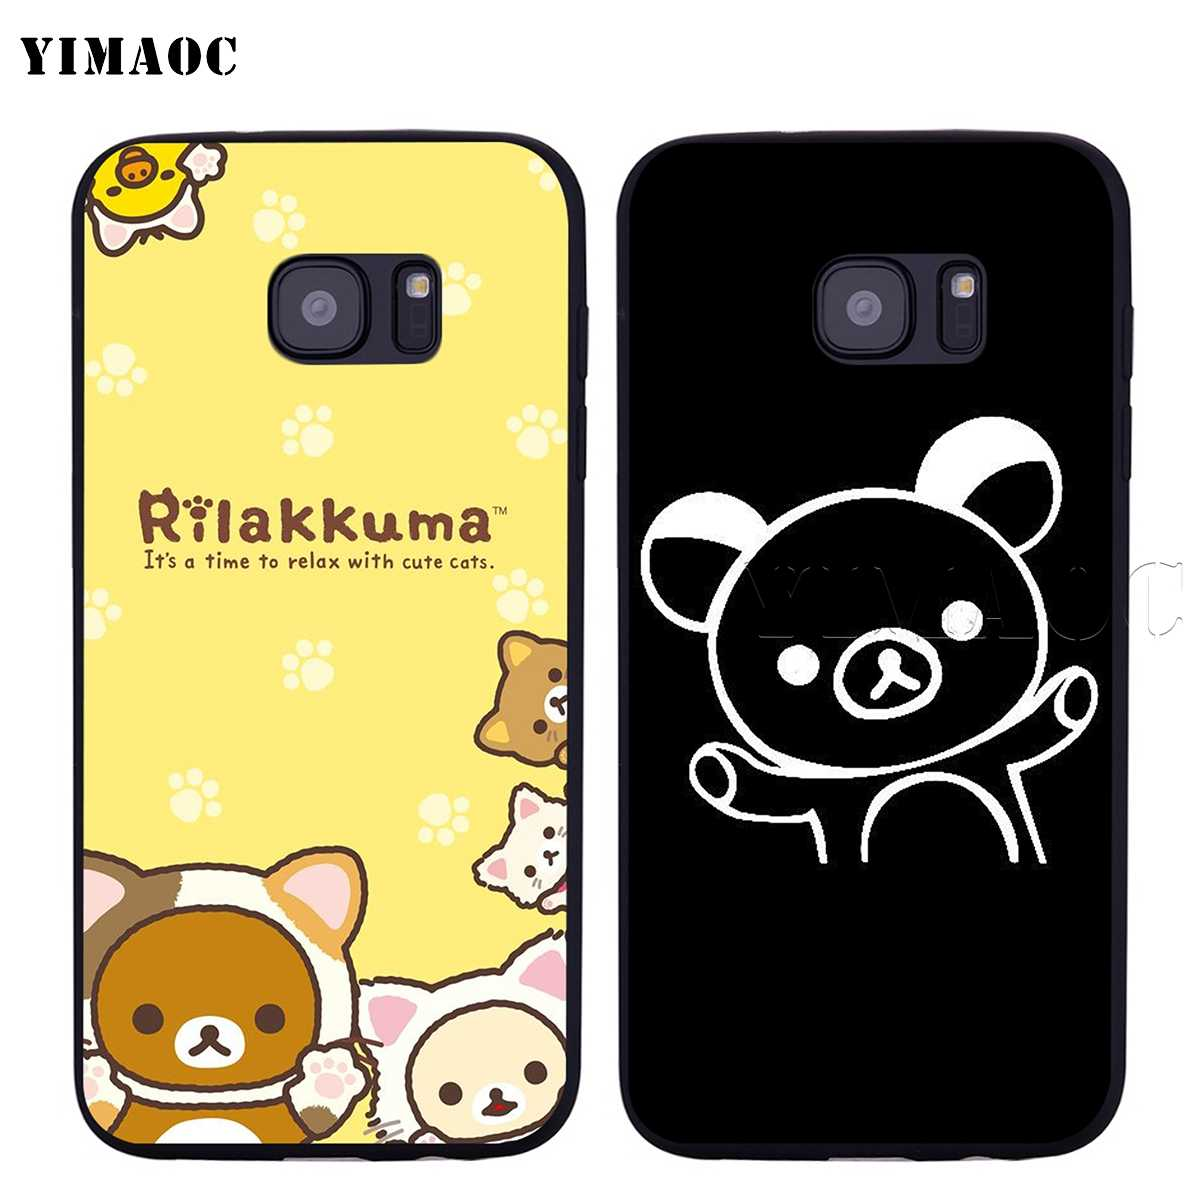 competitive price 99eaa 0af16 YIMAOC Rilakkuma Relax Bear Soft Silicone Case for Samsung Galaxy S6 S7  Edge S8 S9 Plus A3 A5 A6 Note 8 9